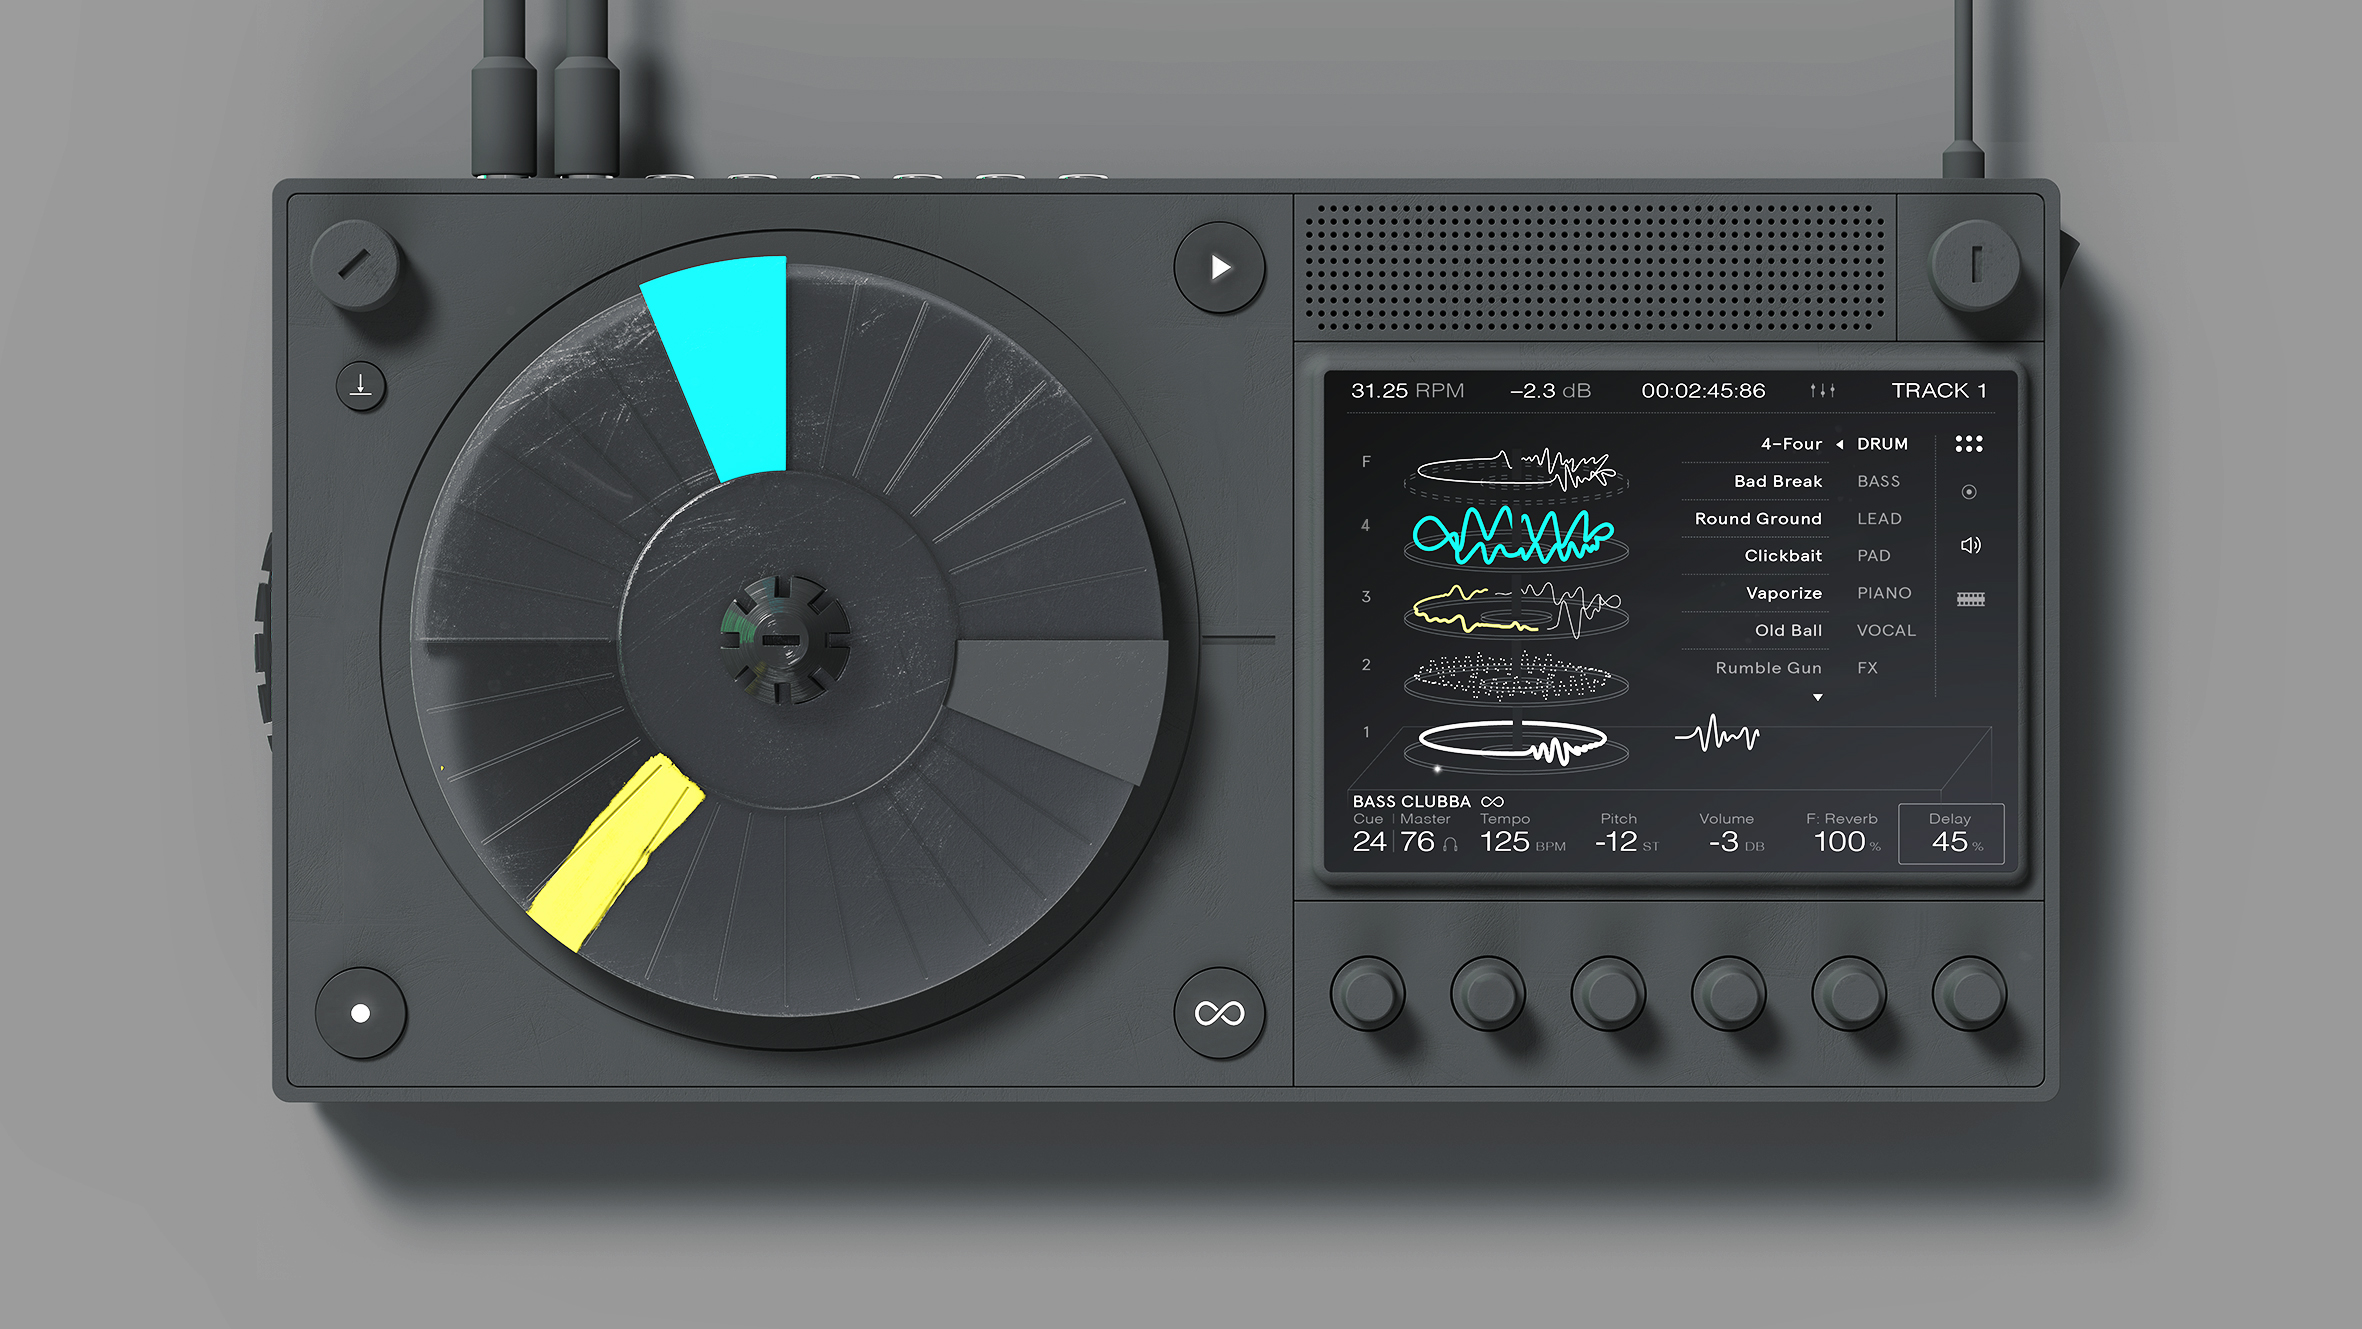 Interface of Sound